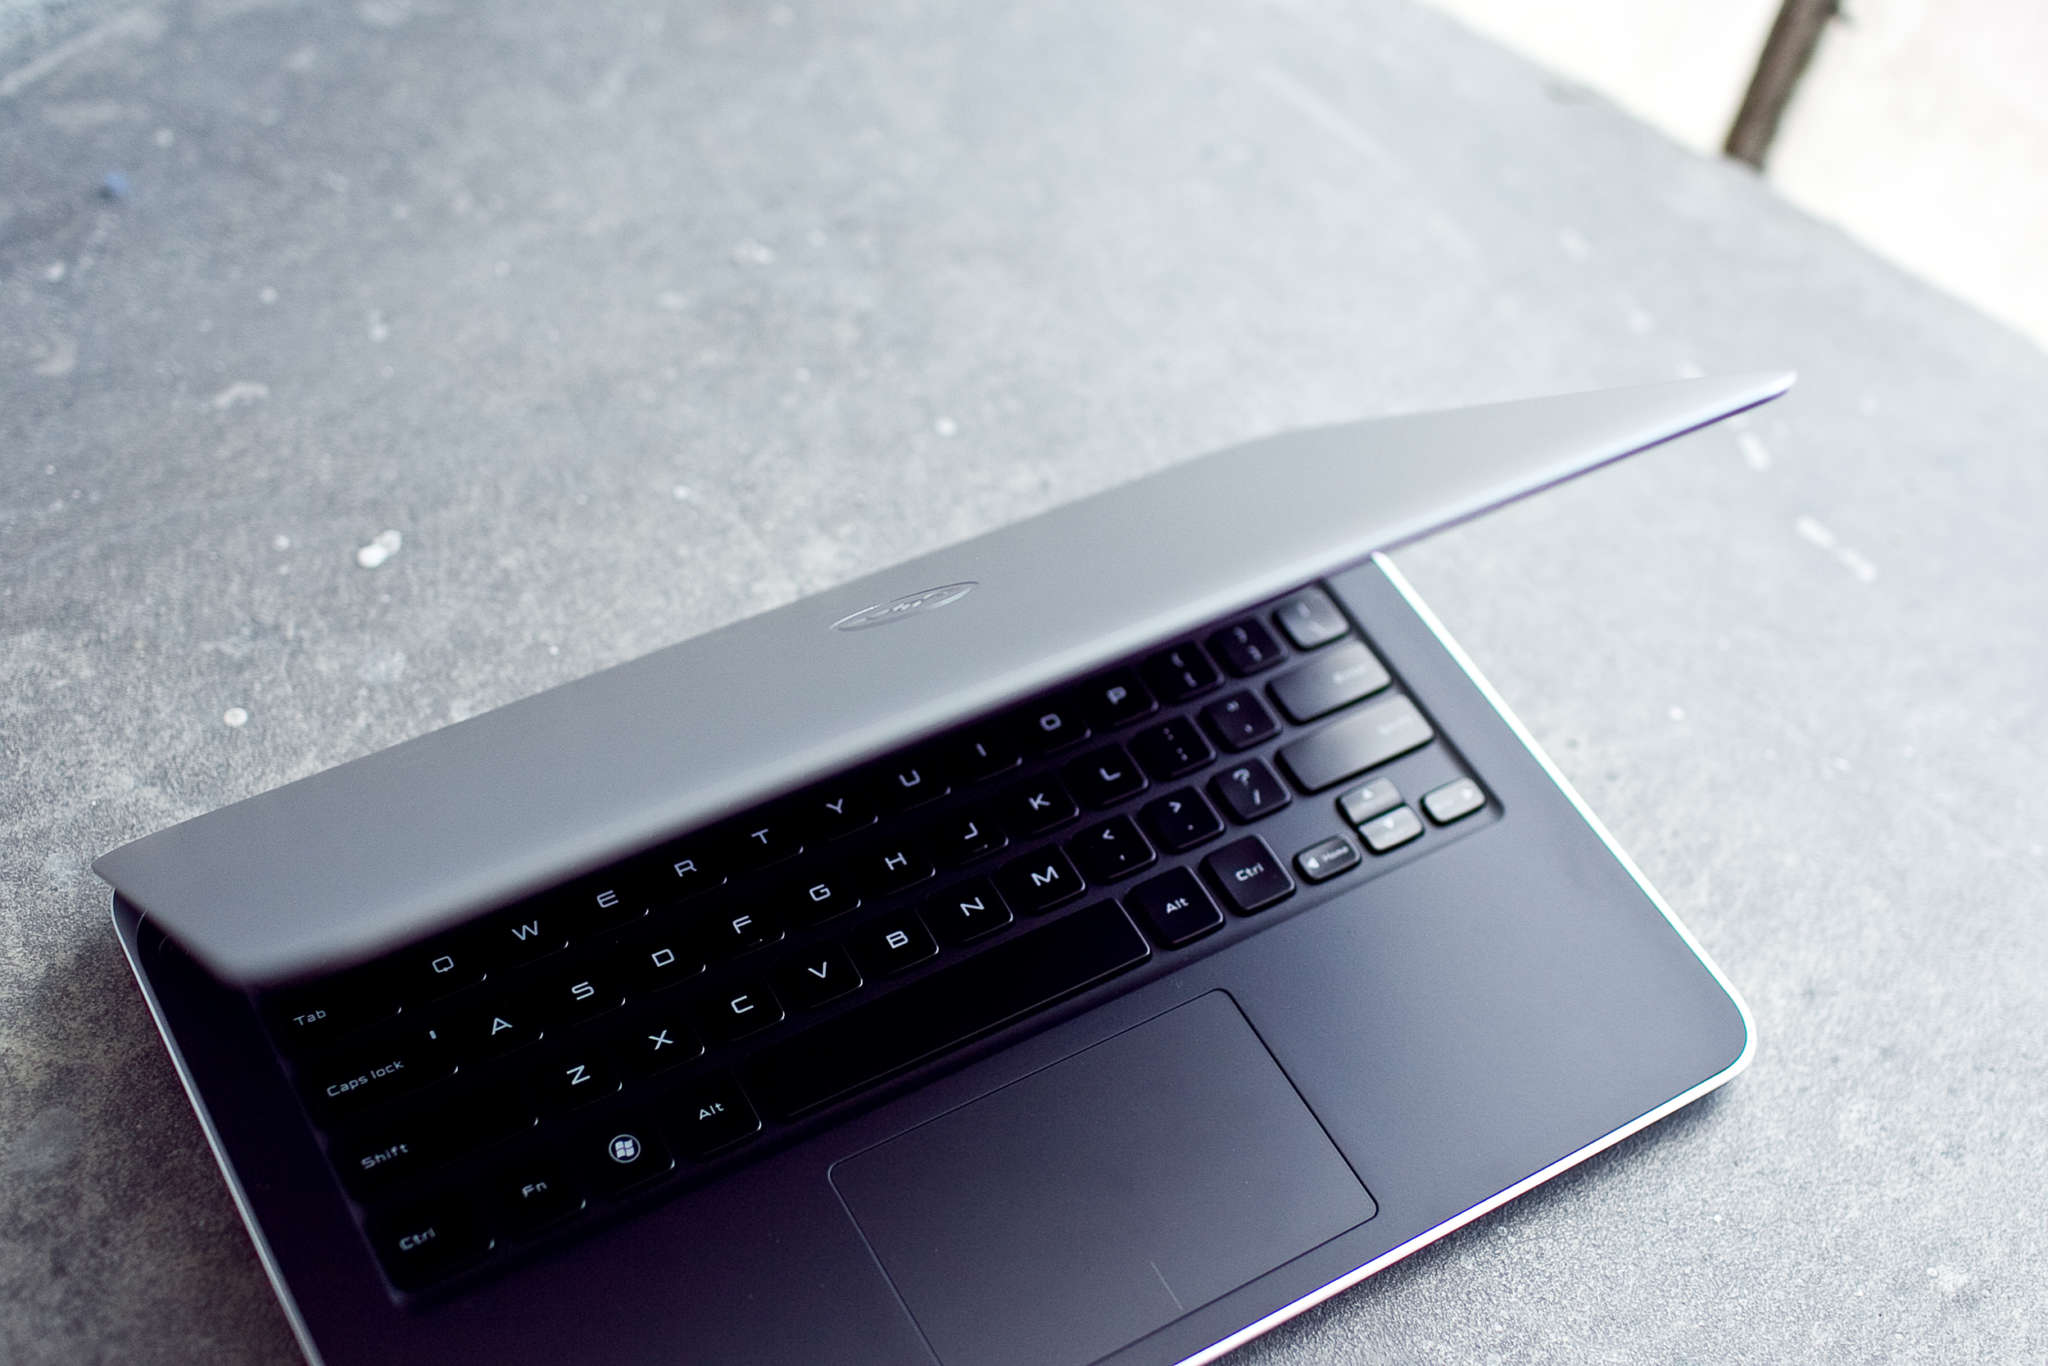 Dell XPS 13 في مؤتمر ces 2015